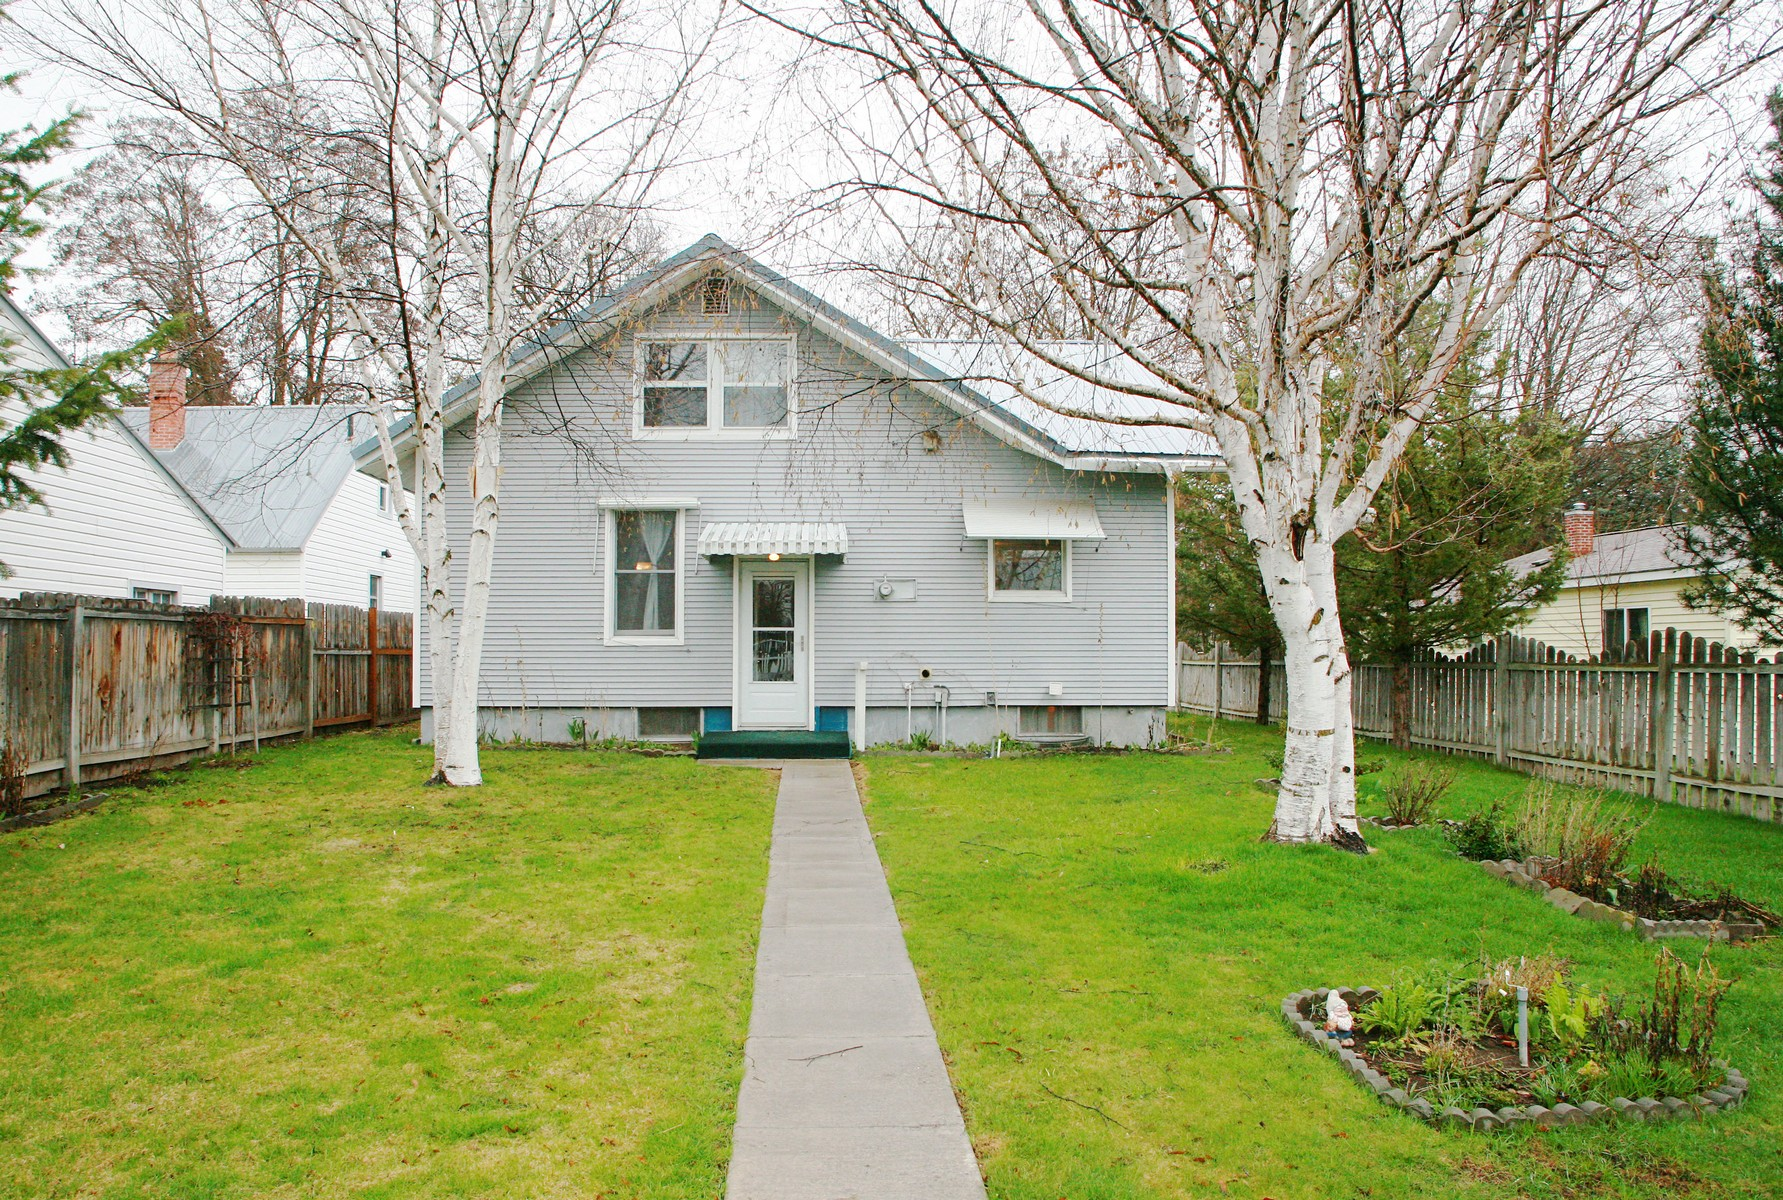 Additional photo for property listing at 686 2nd Ave East North, Kalispell, MT 59901 686  2nd Ave  Ea Kalispell, Montana 59901 United States